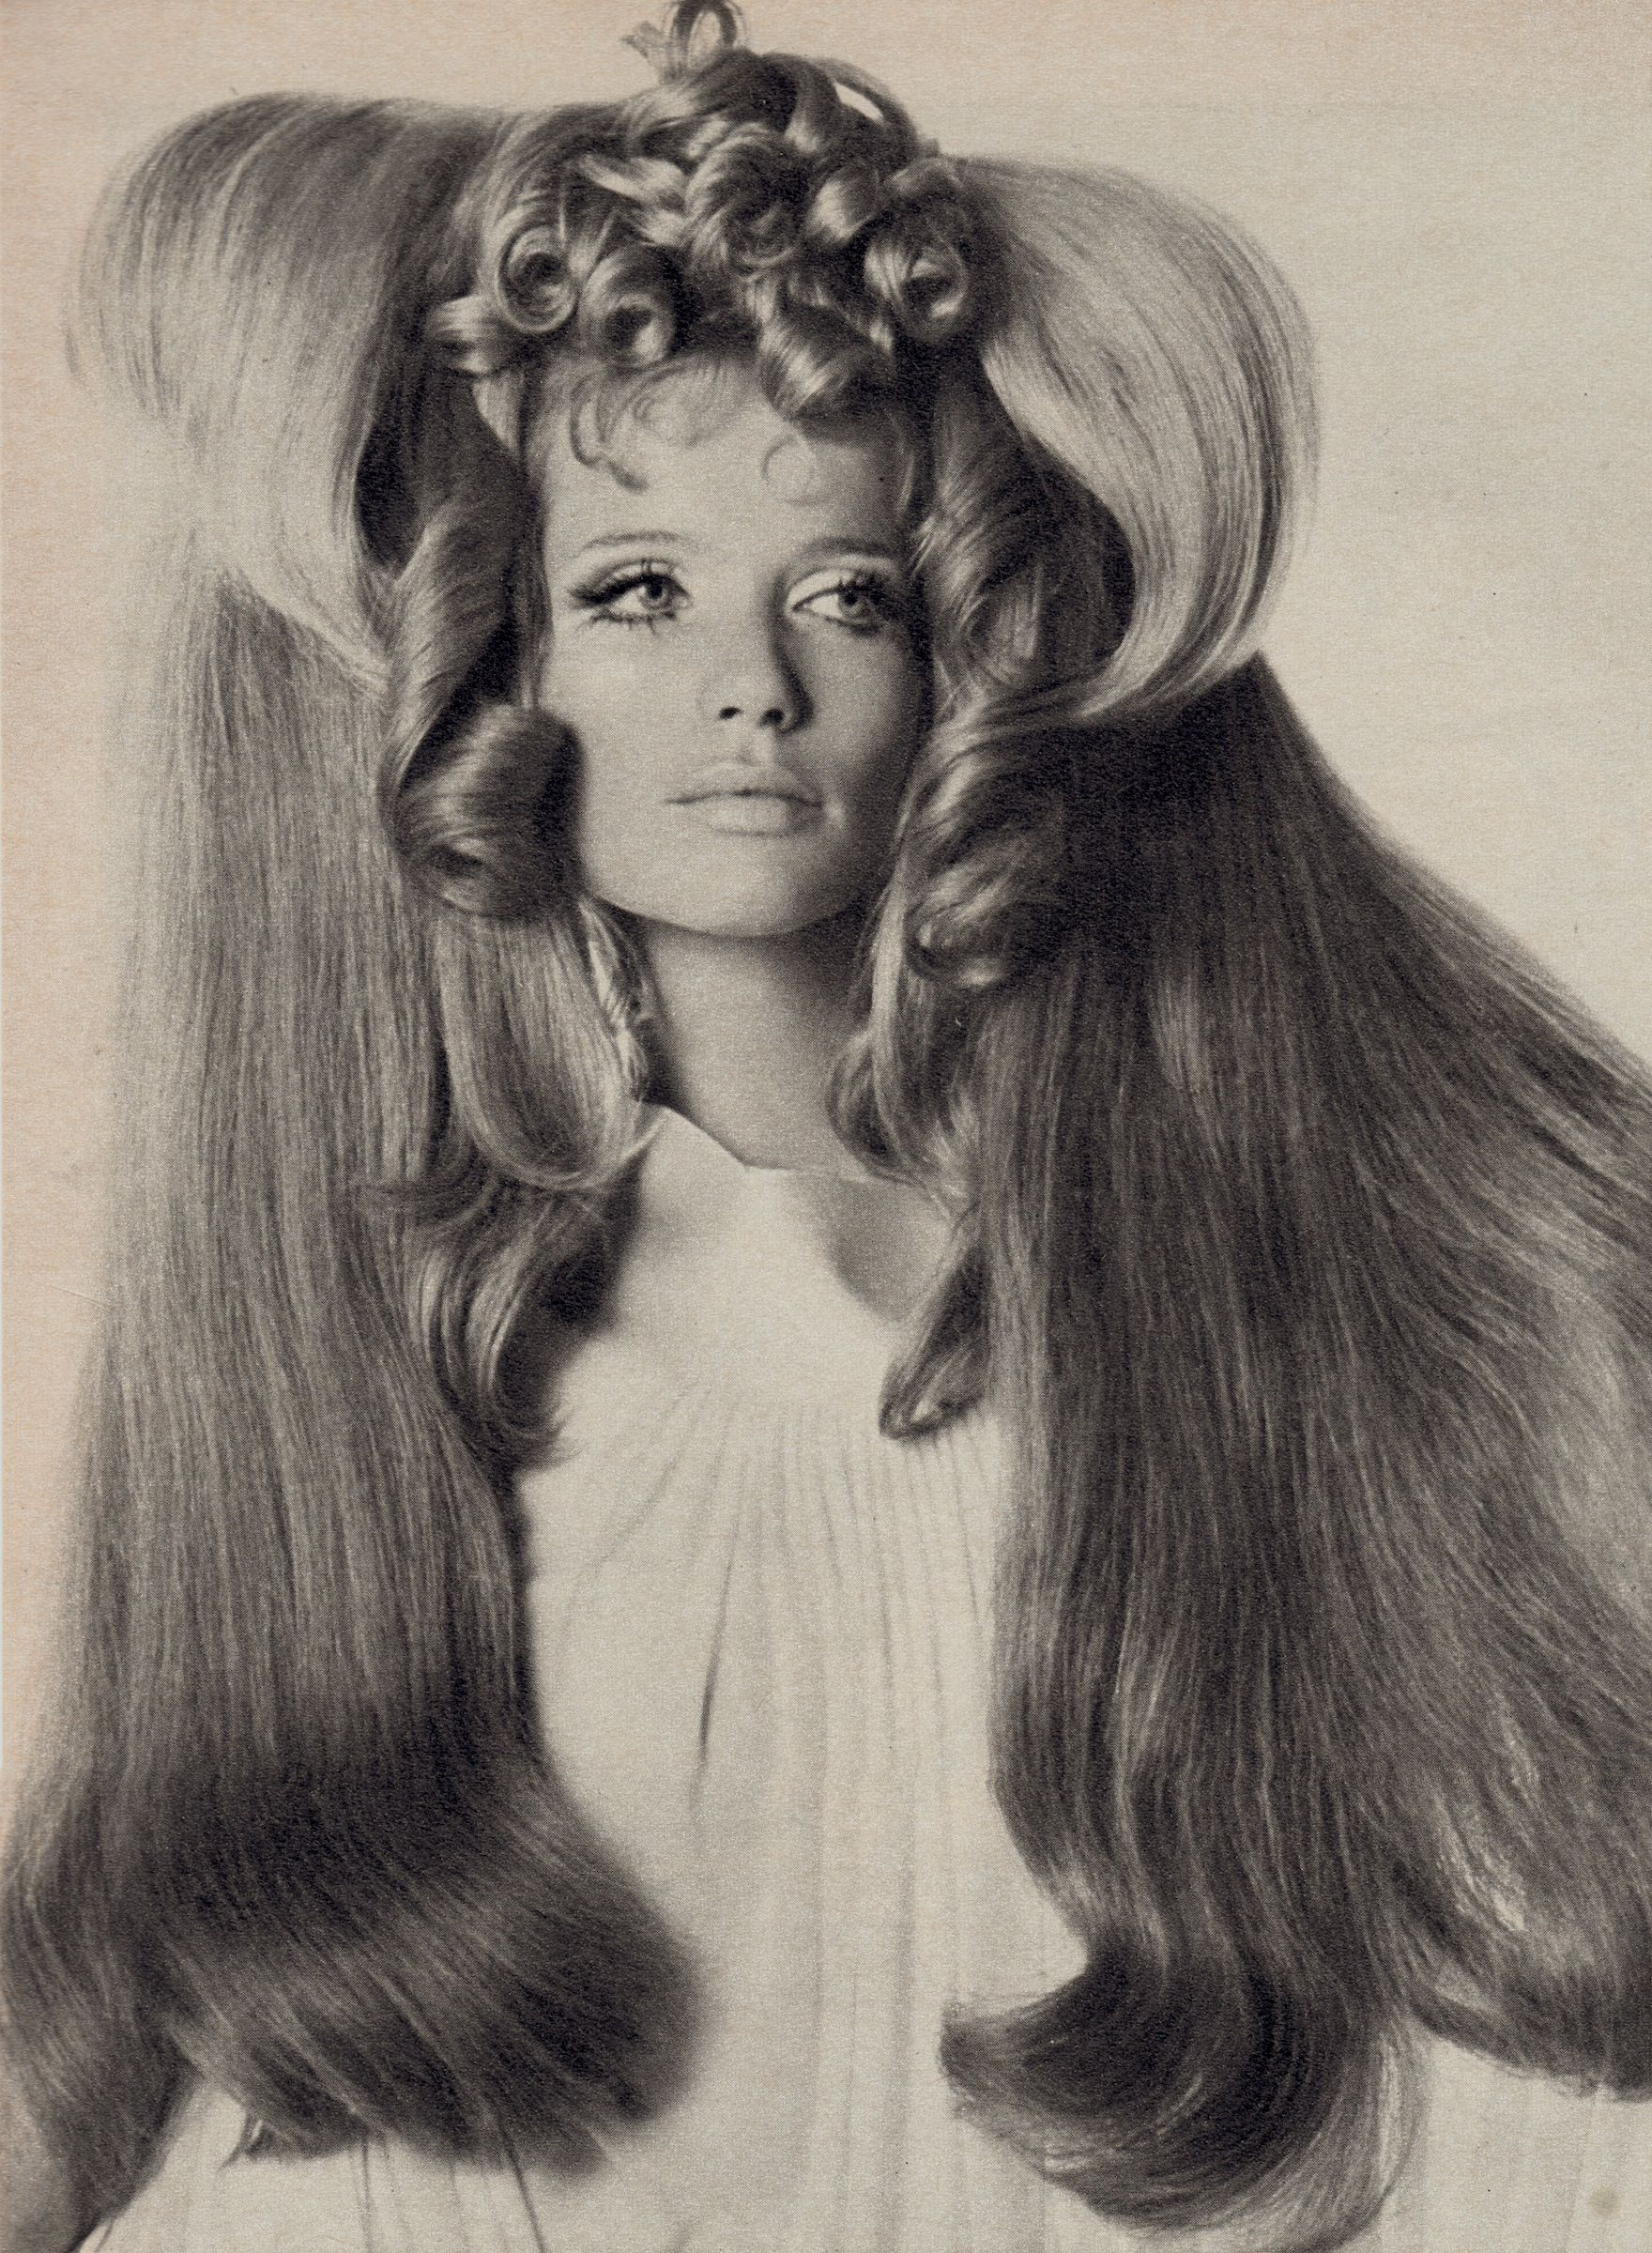 Verushka in Big Hair by IRVING PENN for Vogue 1968 From 2 Welt